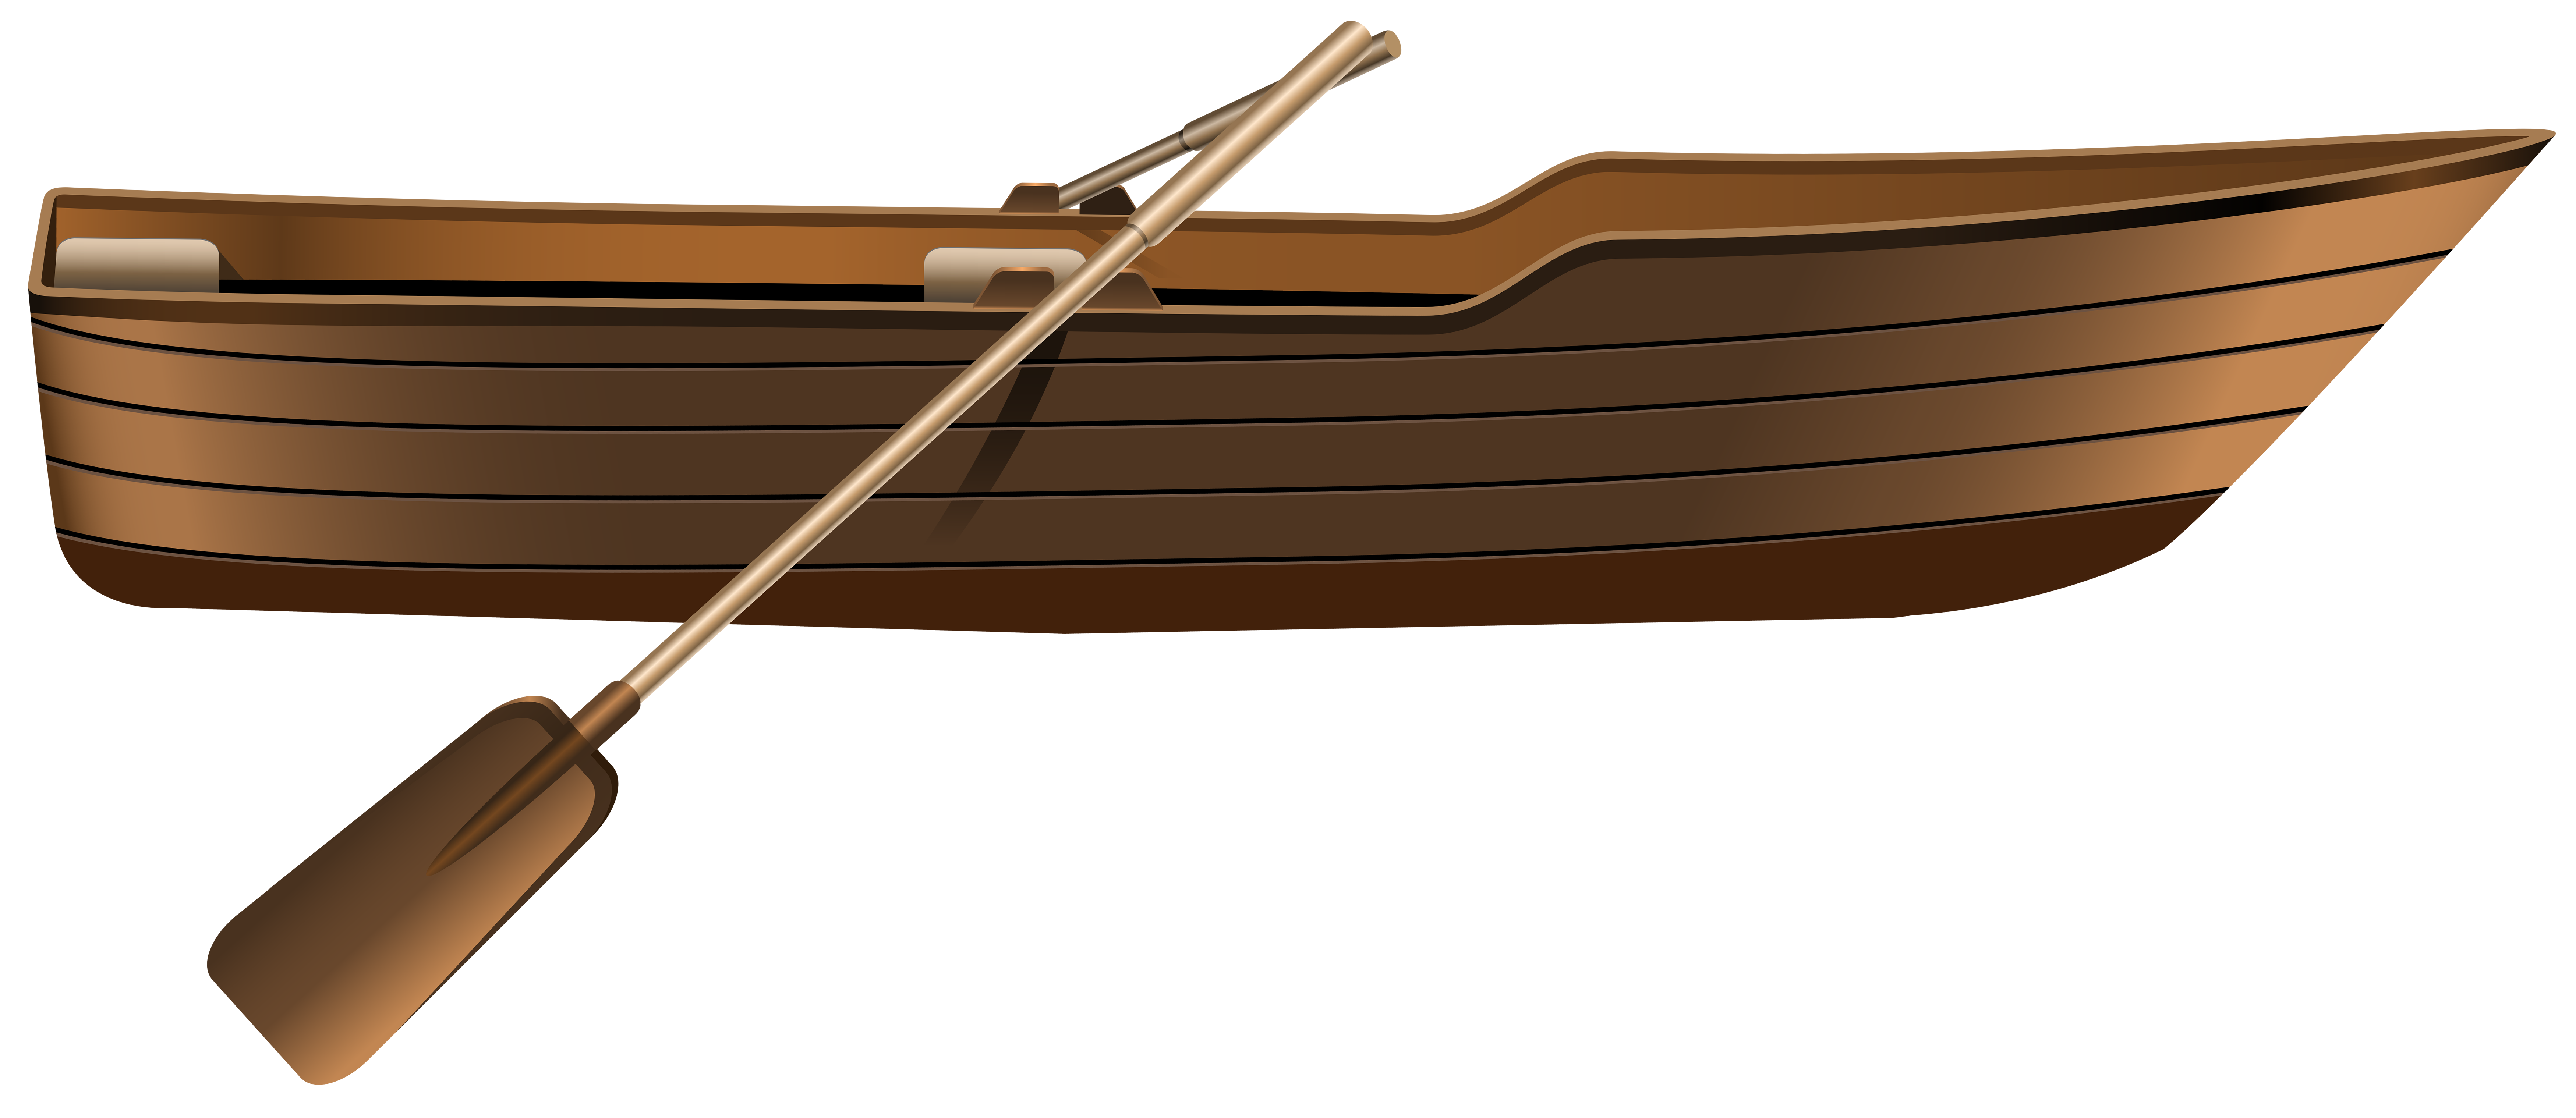 Boat png clipart svg transparent stock Wooden Boat PNG Clip Art - Best WEB Clipart svg transparent stock